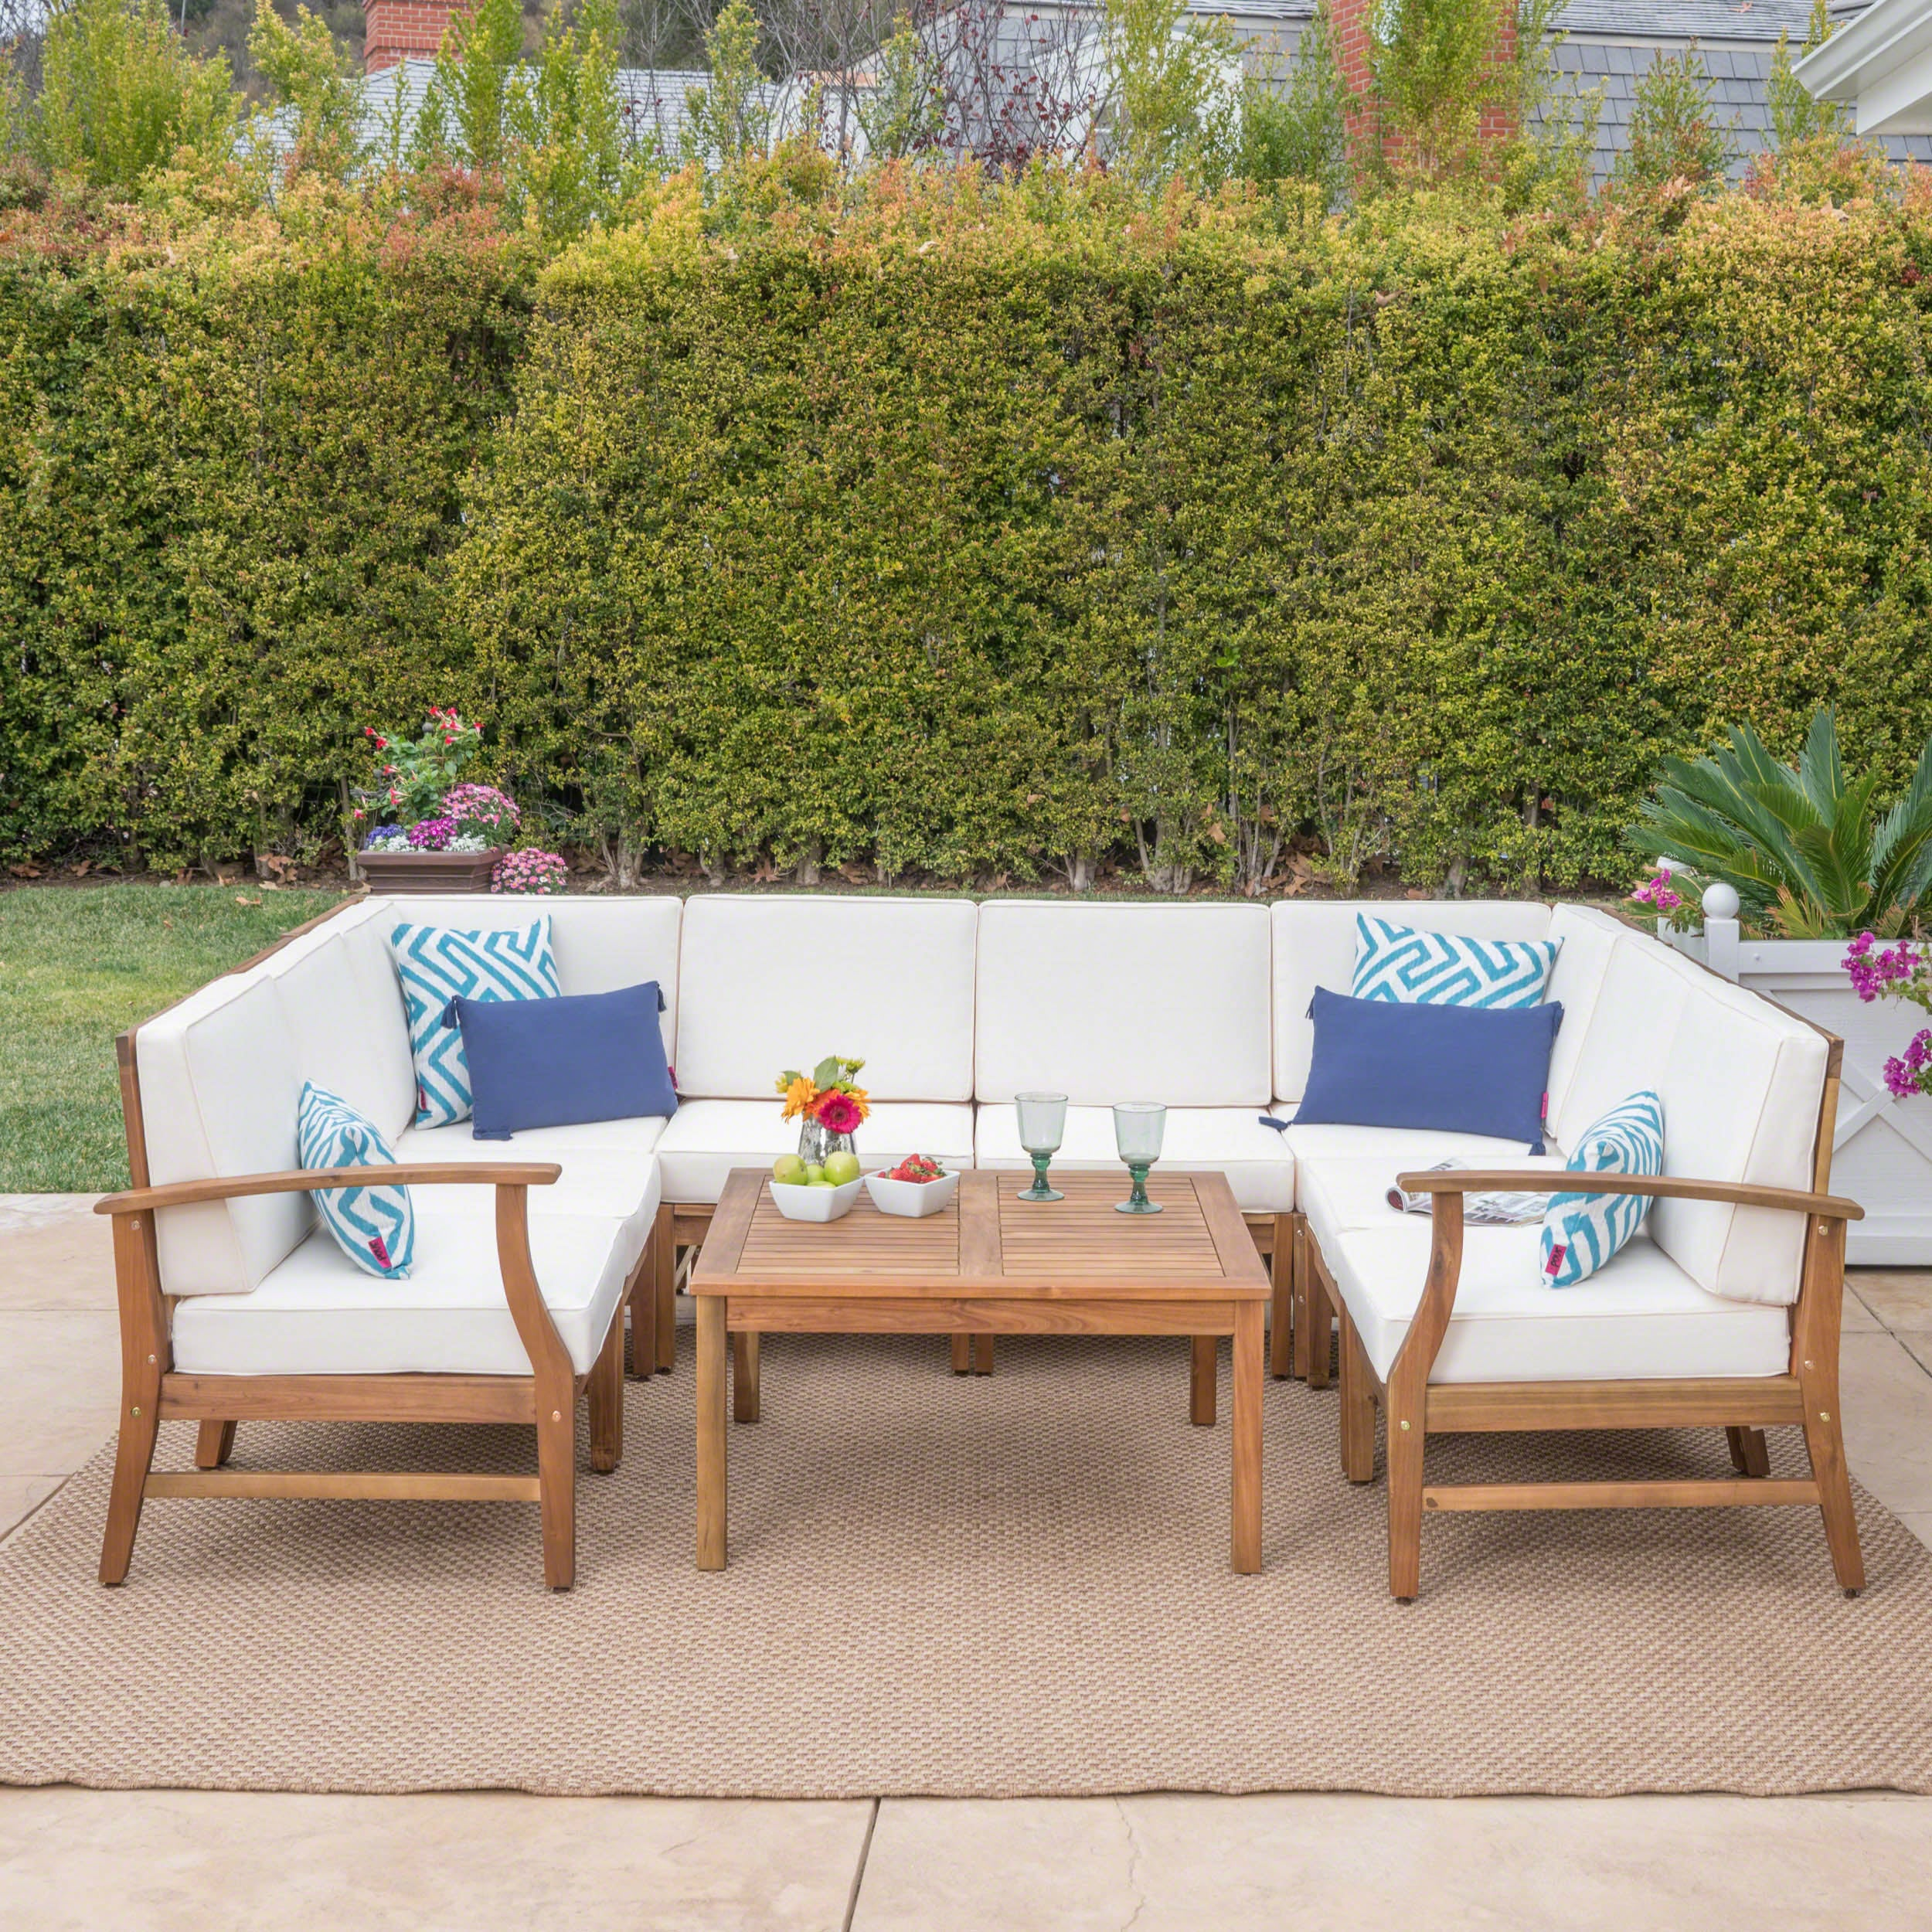 c sectional co wood pcok outdoor patio furniture